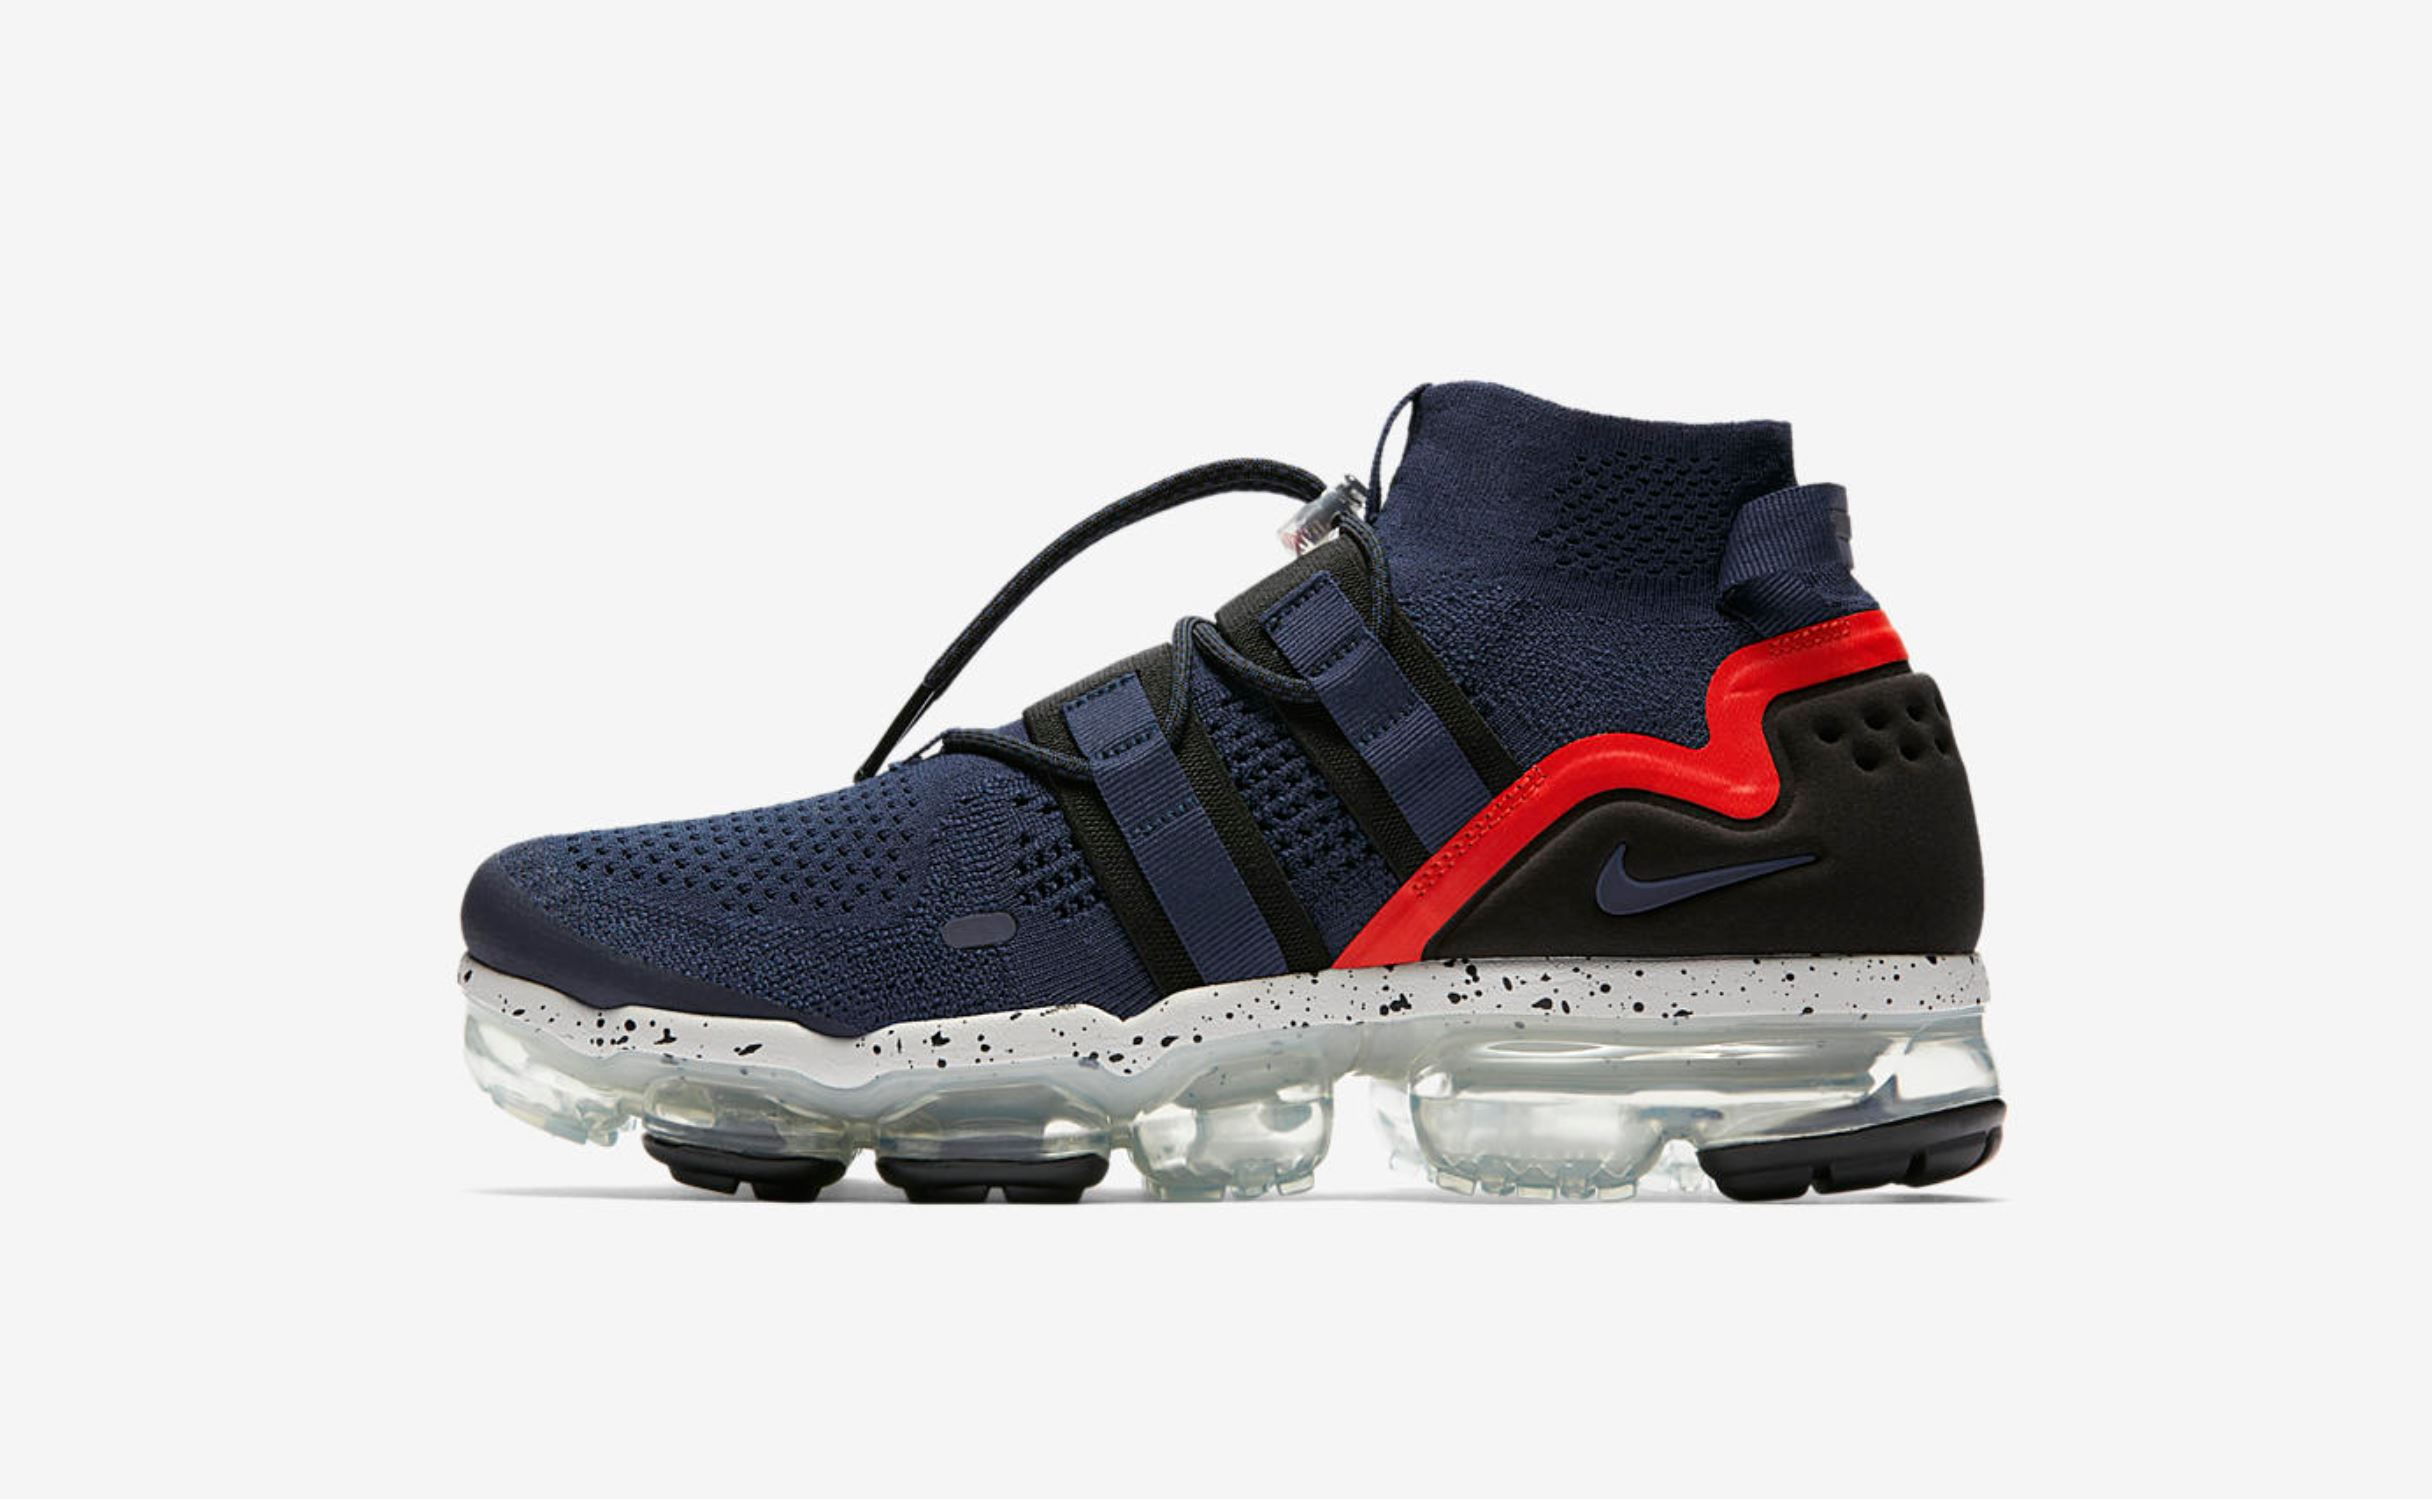 new arrival a6165 c96ec The Nike Air VaporMax Utility Drops in a New Colorway This ...